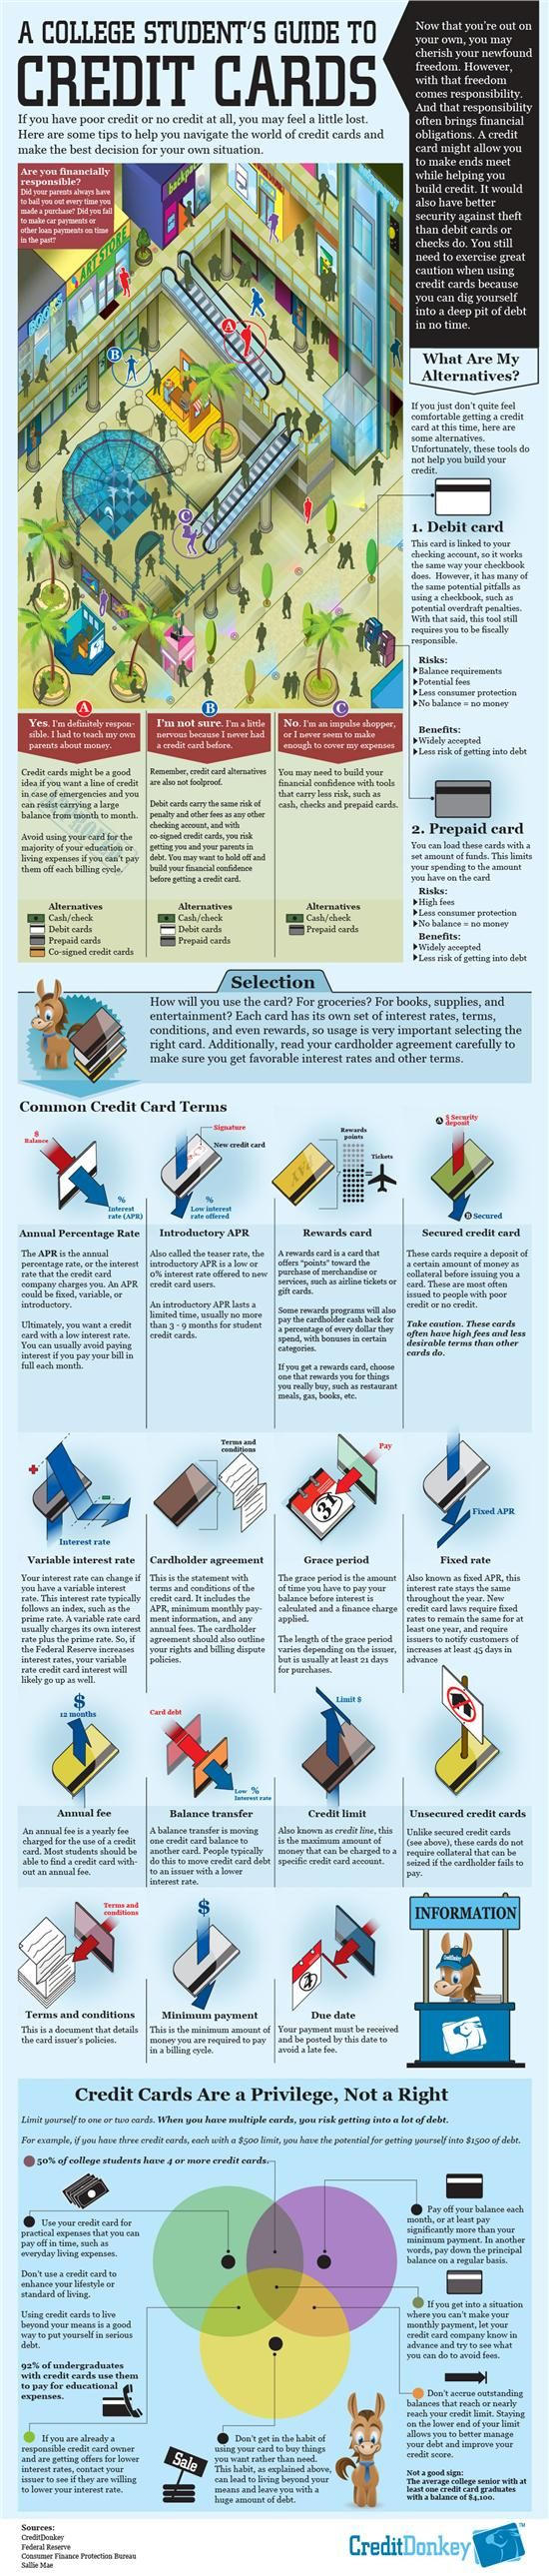 A Student's Guide to Credit Cards (infographic) (from Credit Donkey)